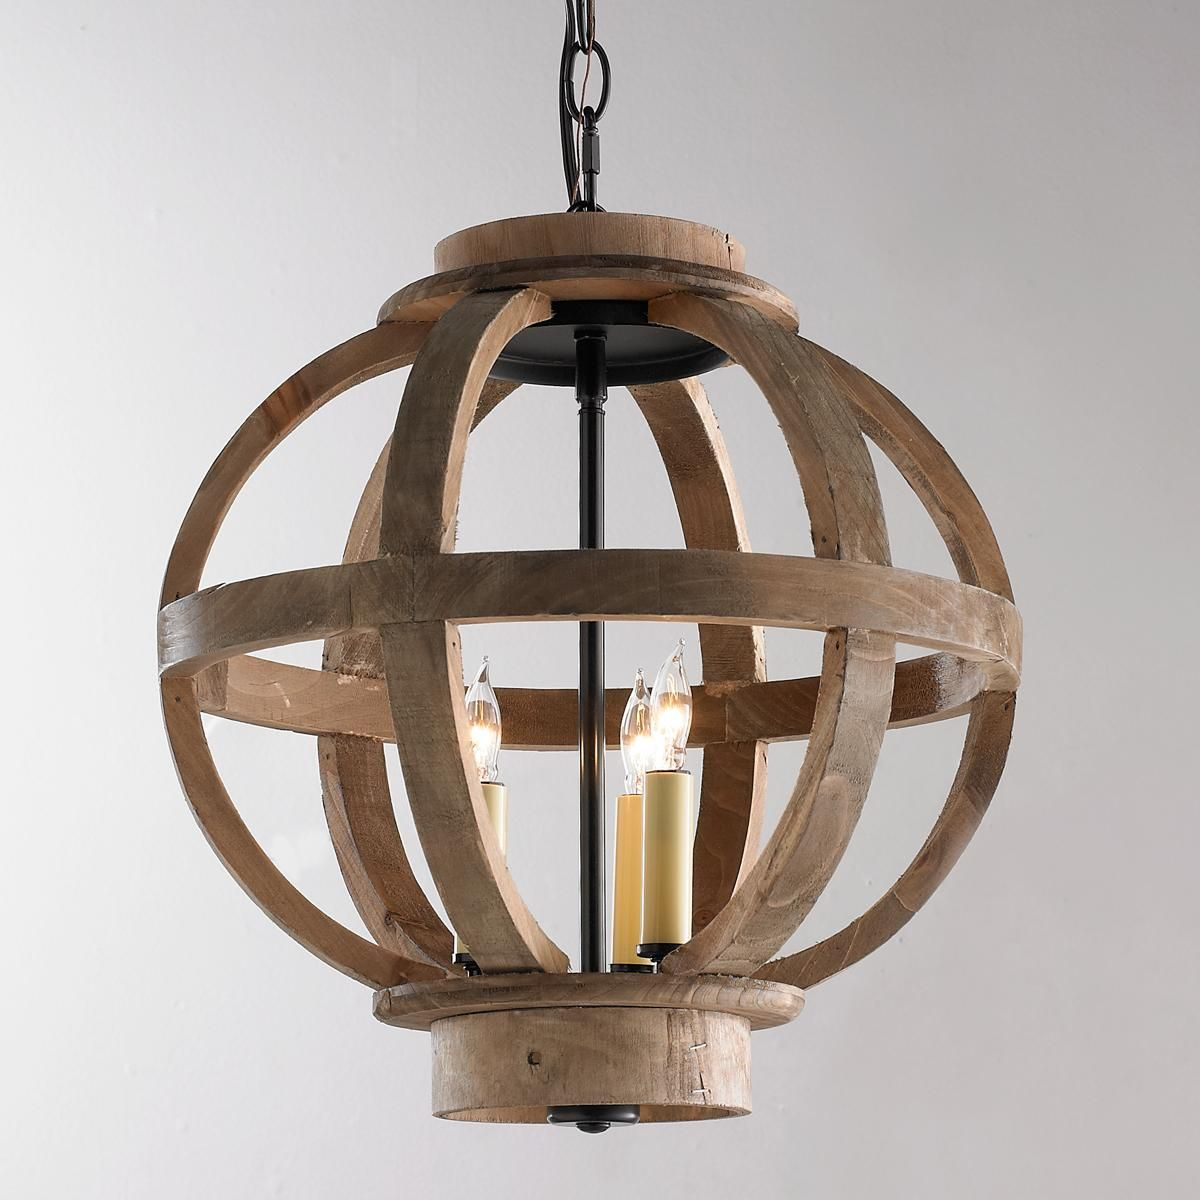 Mini Wood Globe Lantern Rustic Pendant Lighting Small